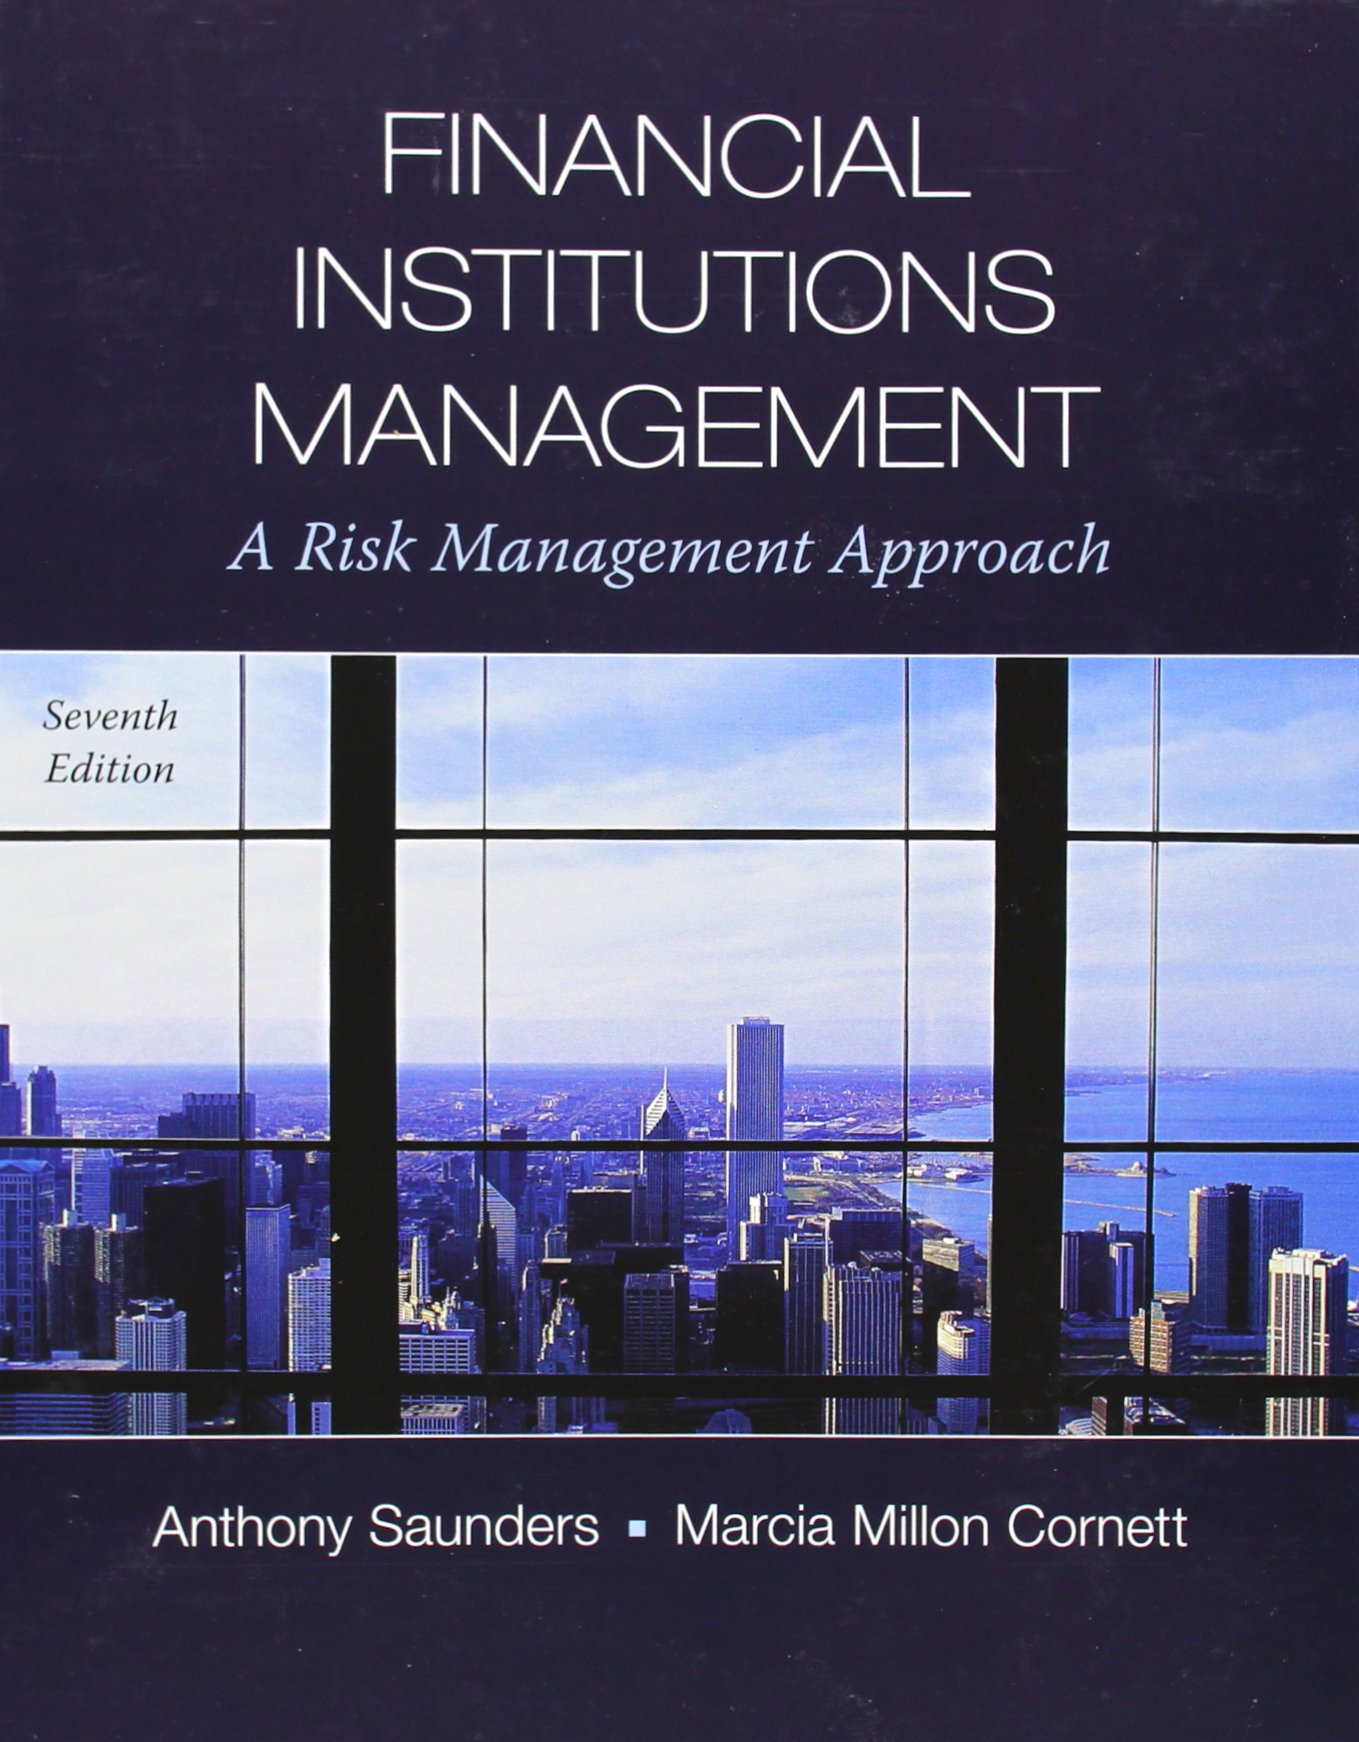 Financial Institutions Management A Risk Management Approach 7th Edition By Saunders, Cornett - Solution Manual